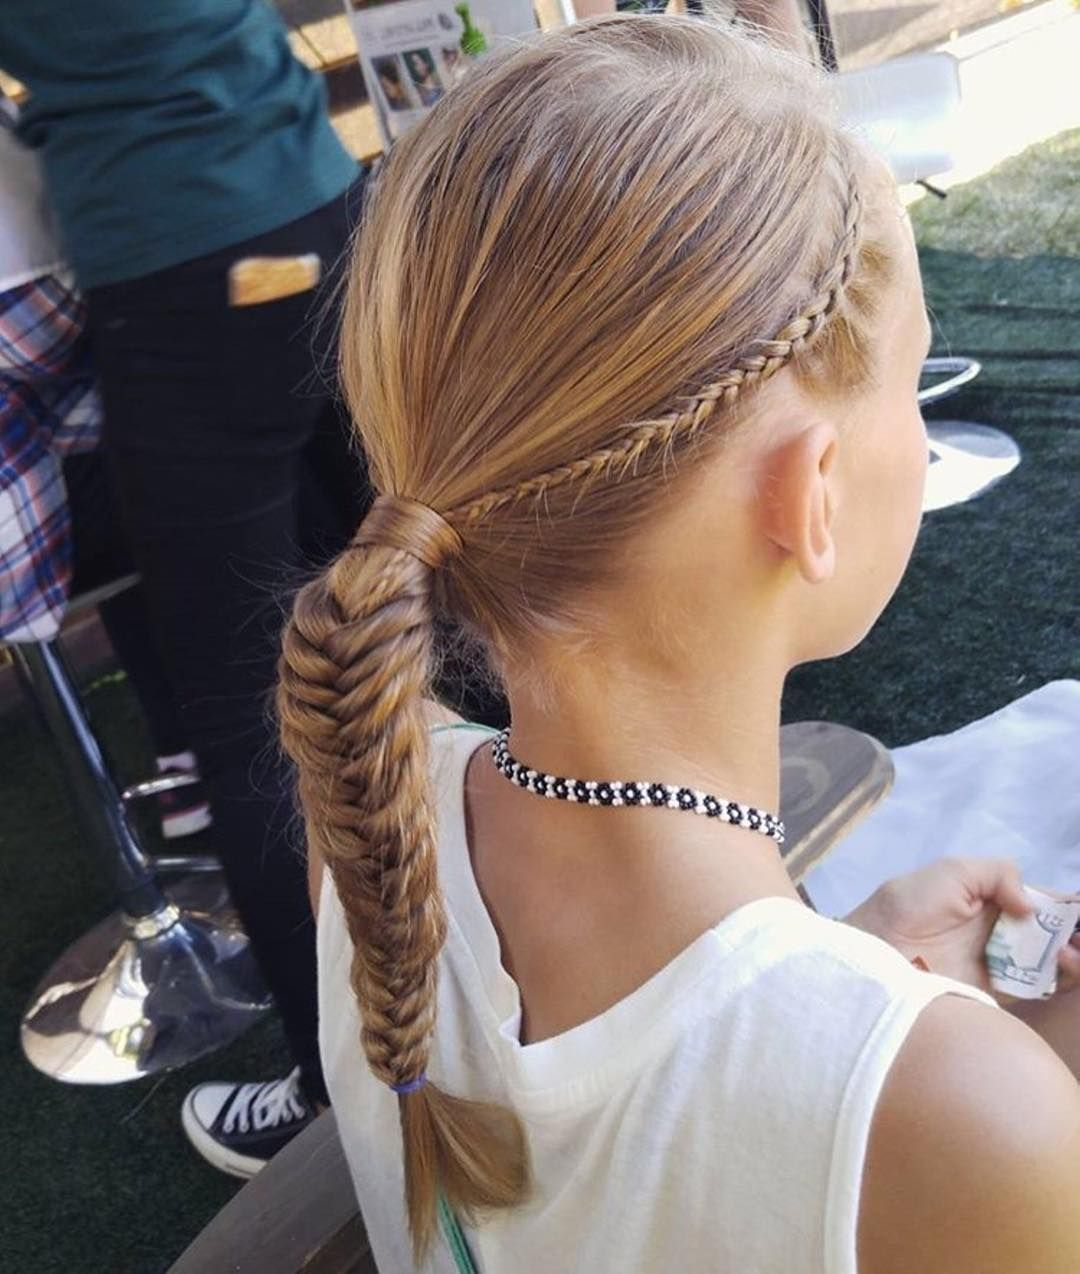 Braids by red.urban.beauty at BottleRock back in May.